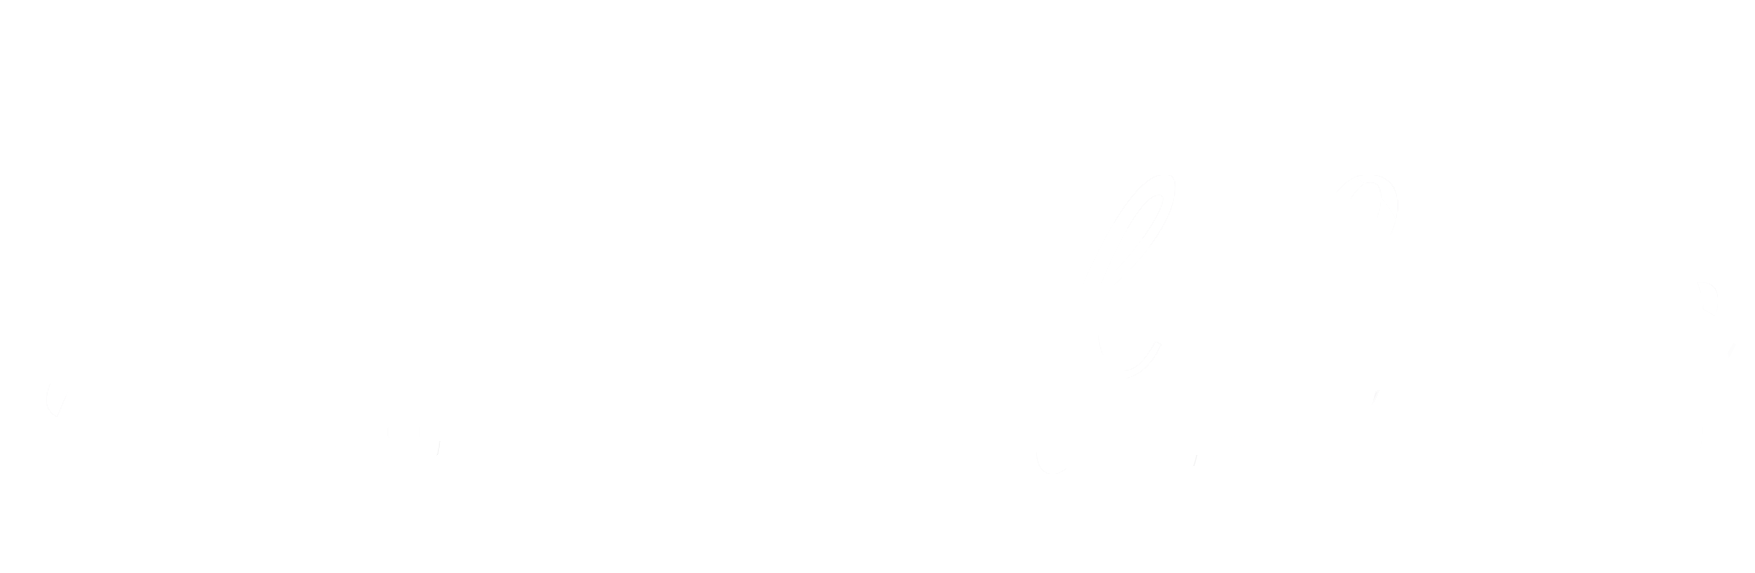 A Trace of Lace